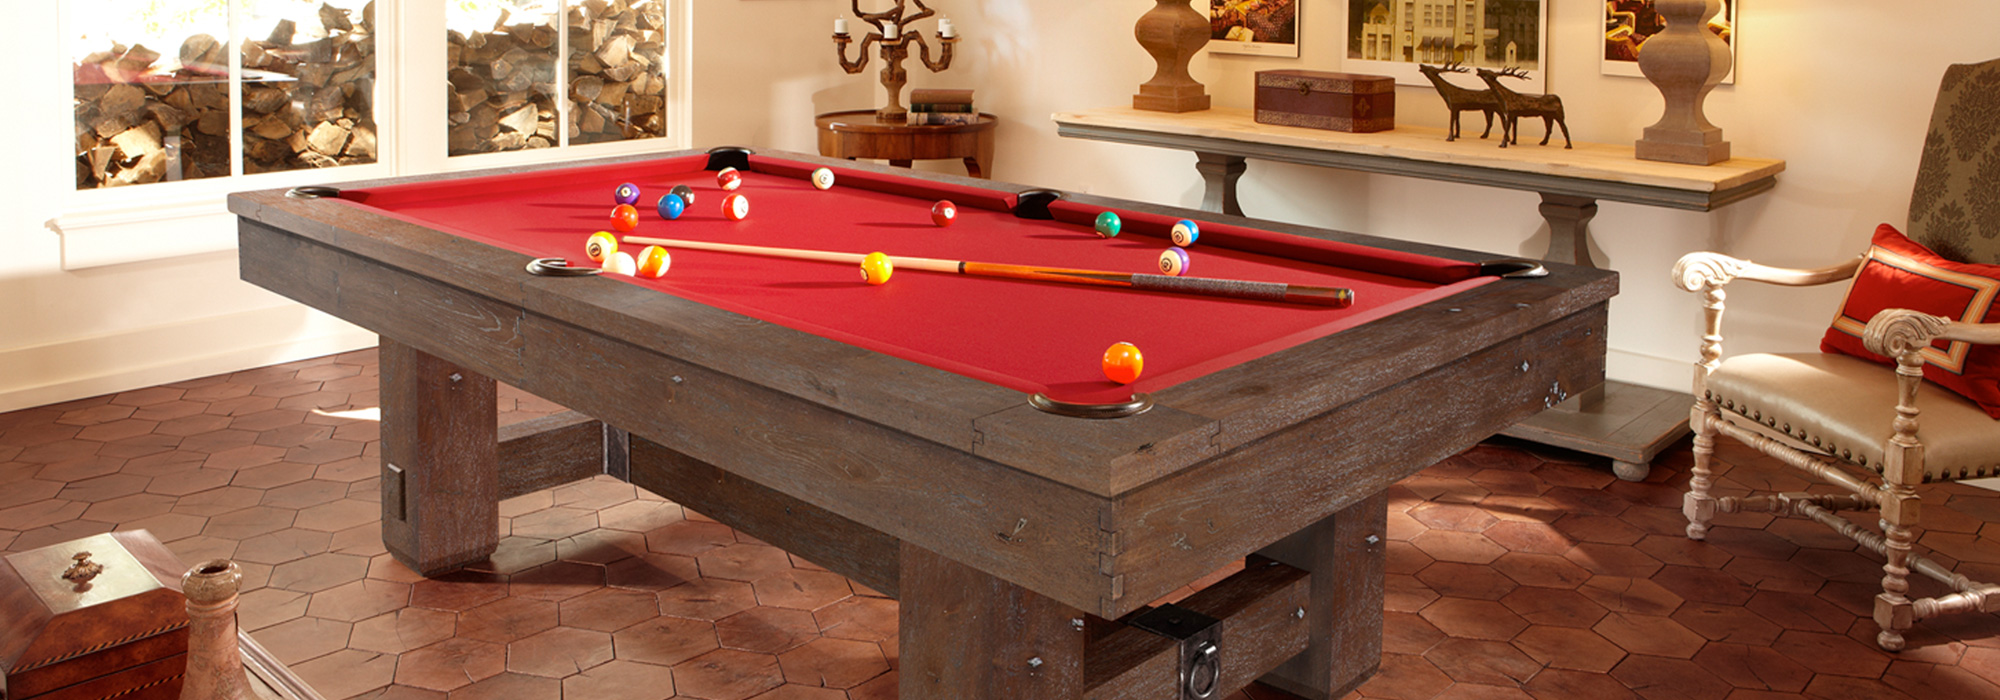 Brunswick 9 ft Pool Tables